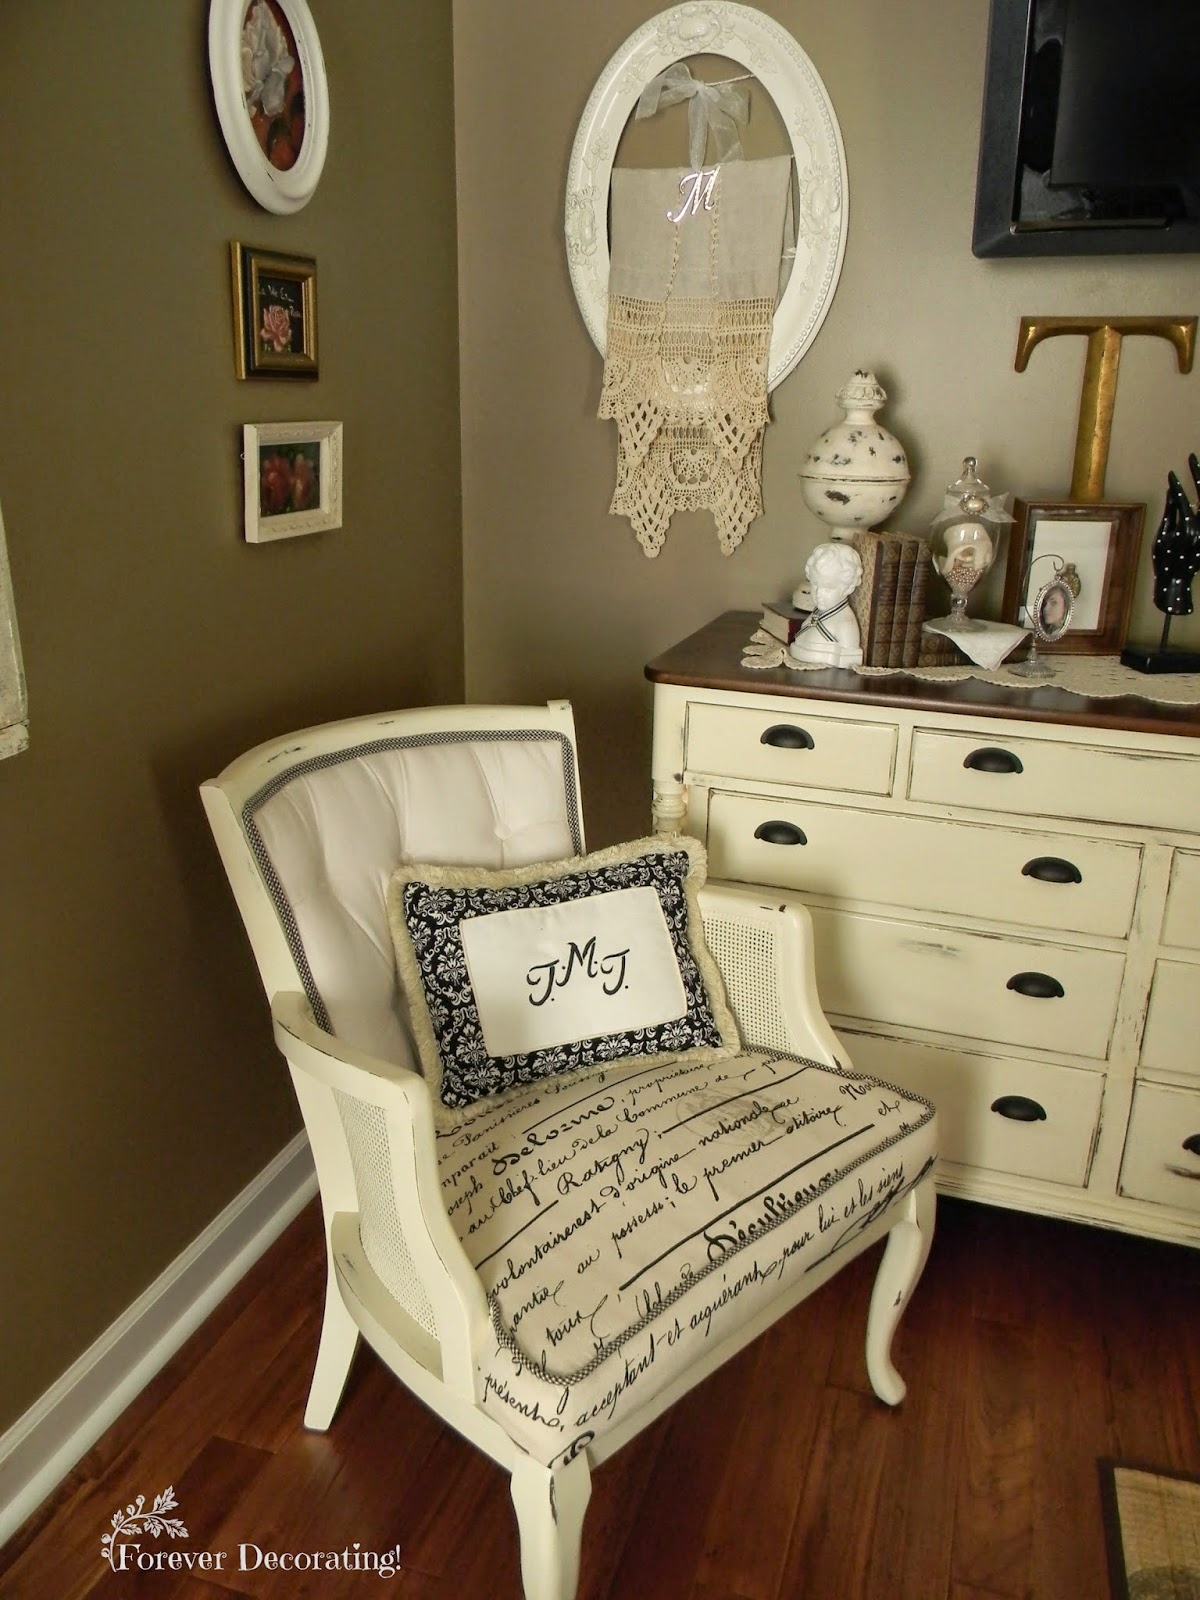 Forever Decorating!: Another Painted Fabric Chair